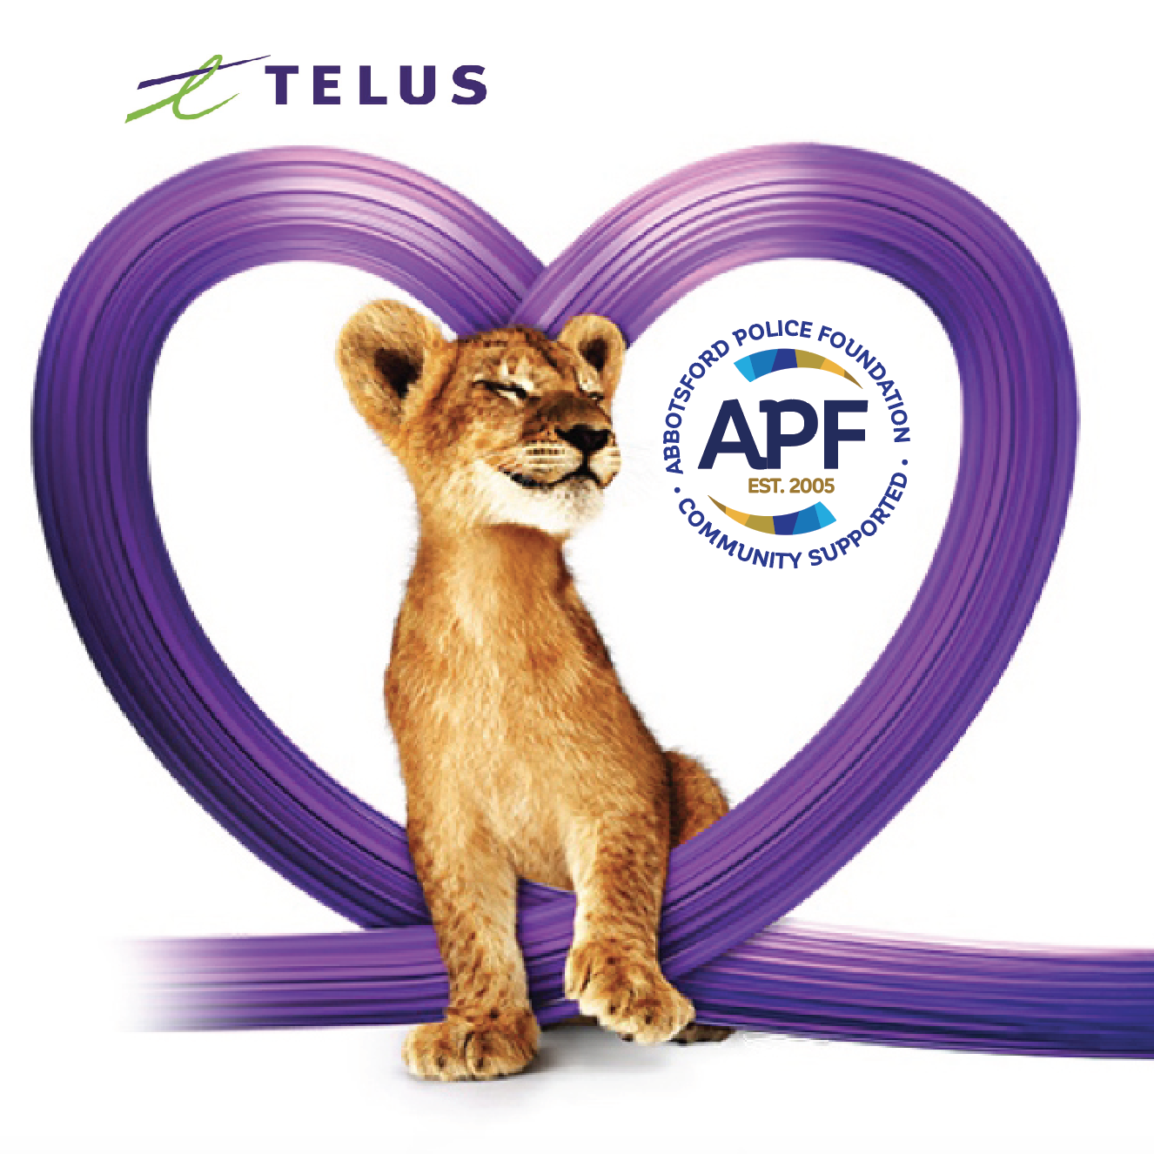 Telus PureFibre Charity Opportunities